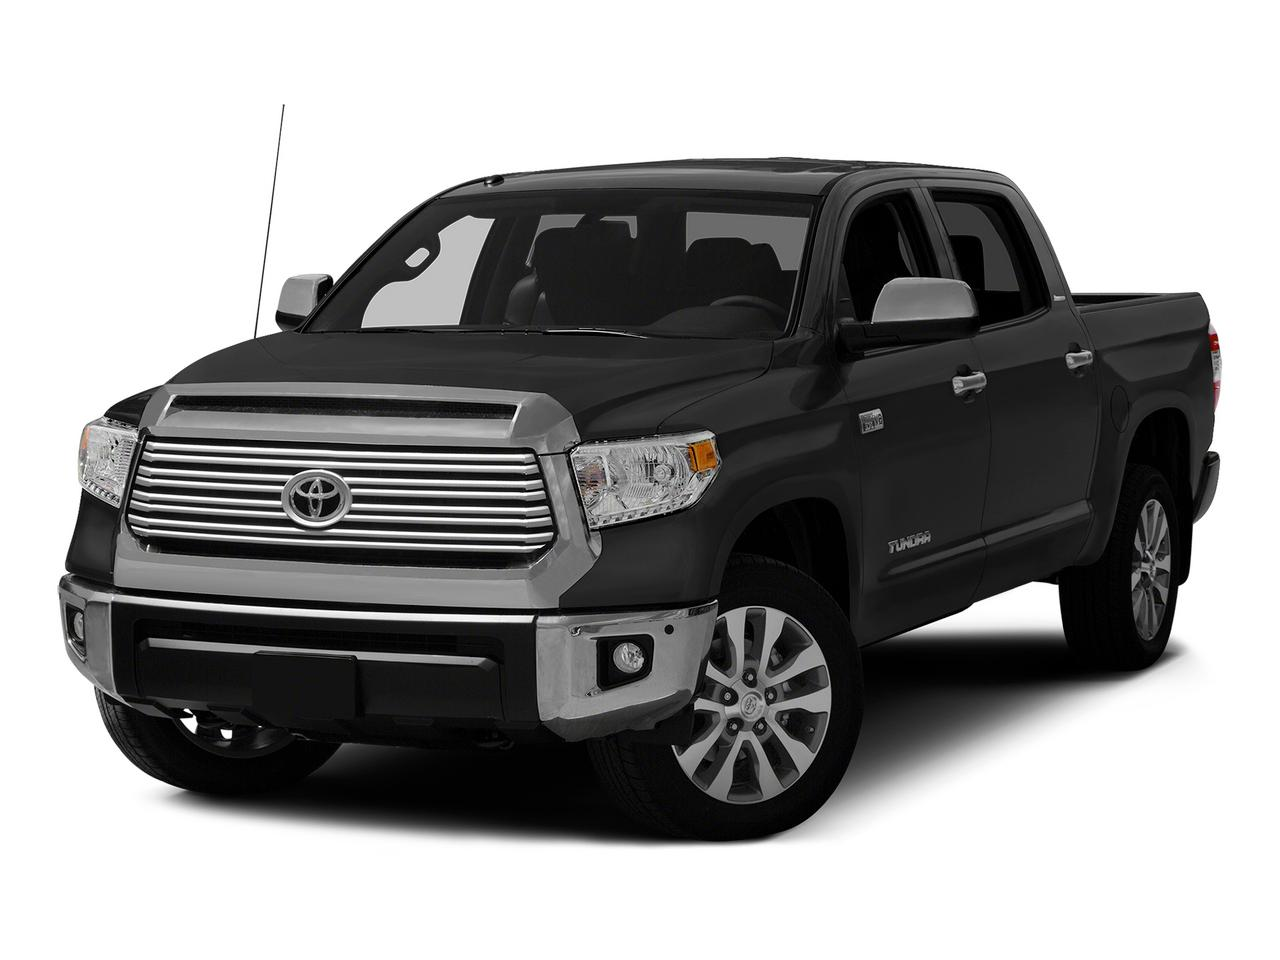 2015 Toyota Tundra 4WD Truck Vehicle Photo in Denver, CO 80123